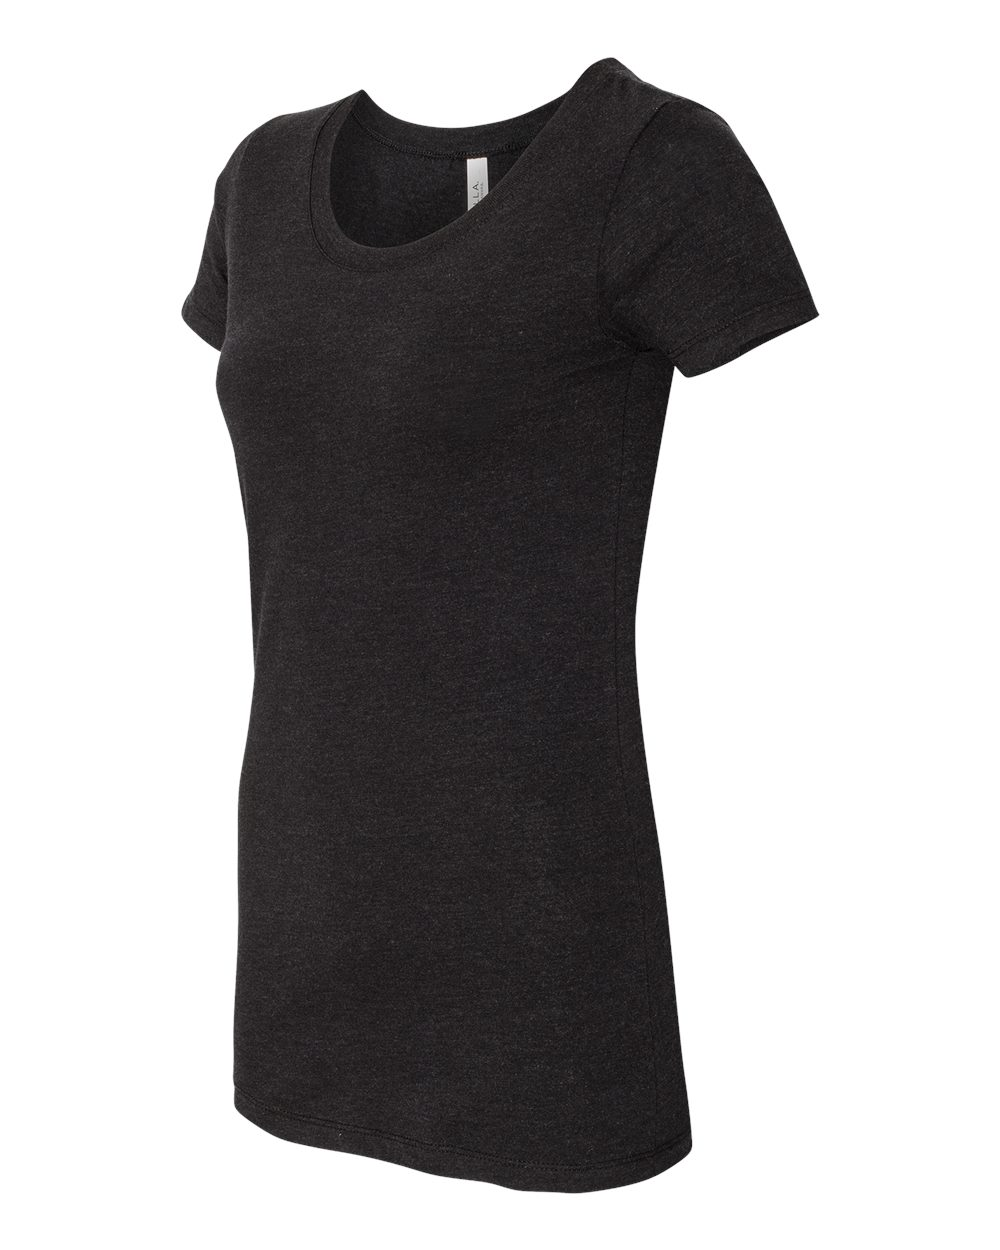 Bella-Canvas-Women-039-s-Triblend-Short-Sleeve-T-Shirt-B8413-S-2XL thumbnail 51